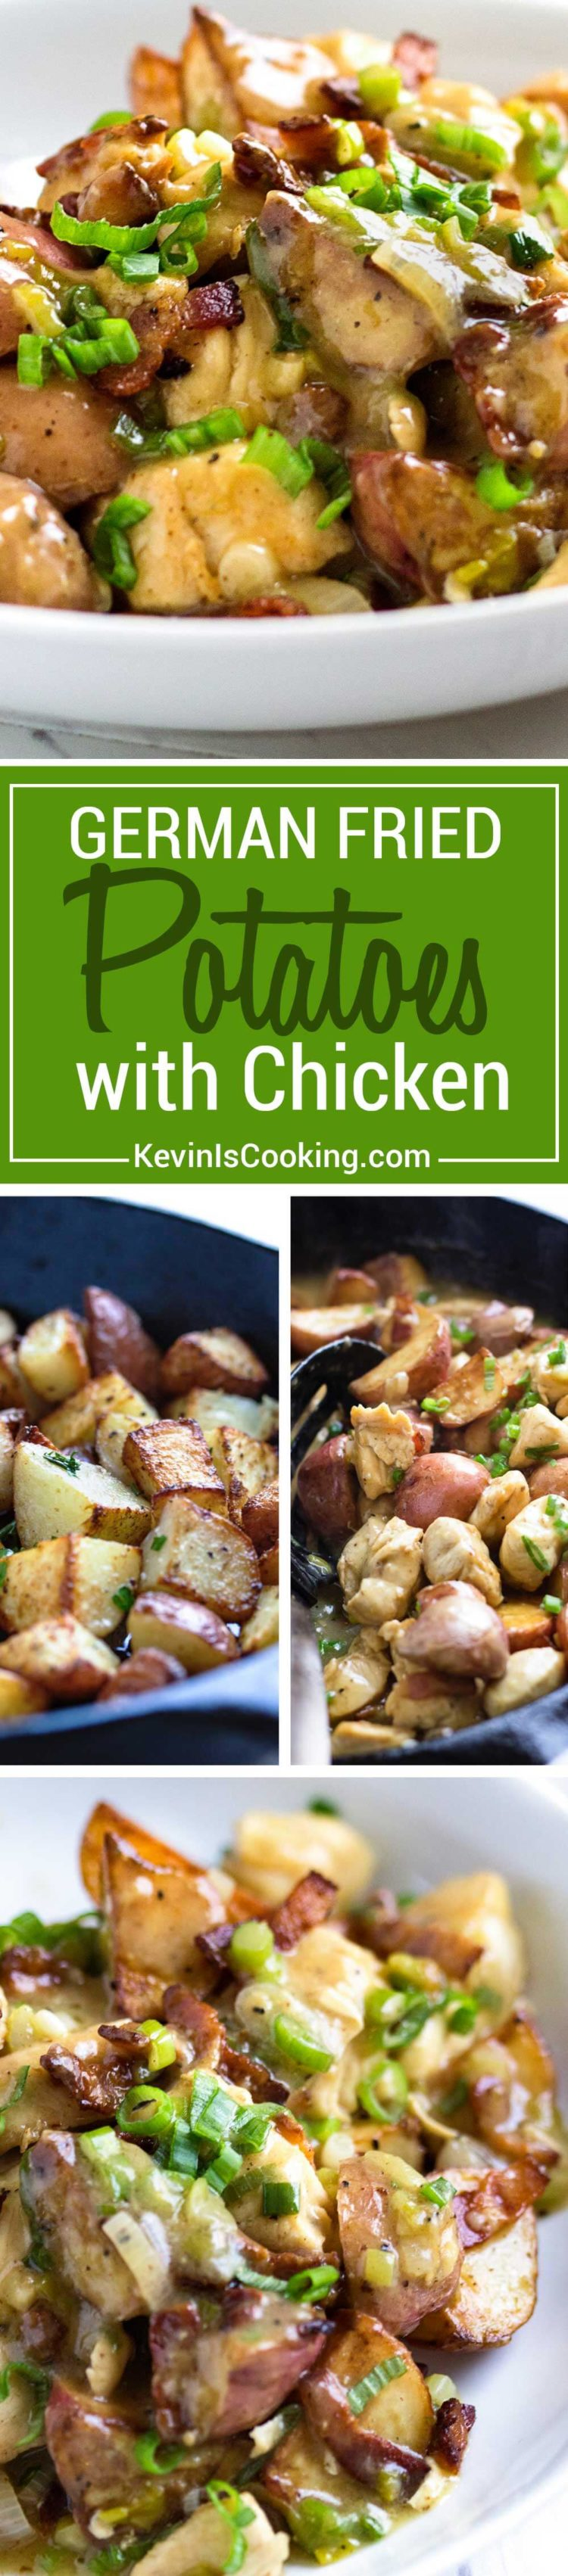 German Fried Potatoes with Chicken - A twist to the traditional German fried potato, this dish mixes a tangy sauce, rotisserie chicken and bacon for a quick and delicious dinner in minutes.